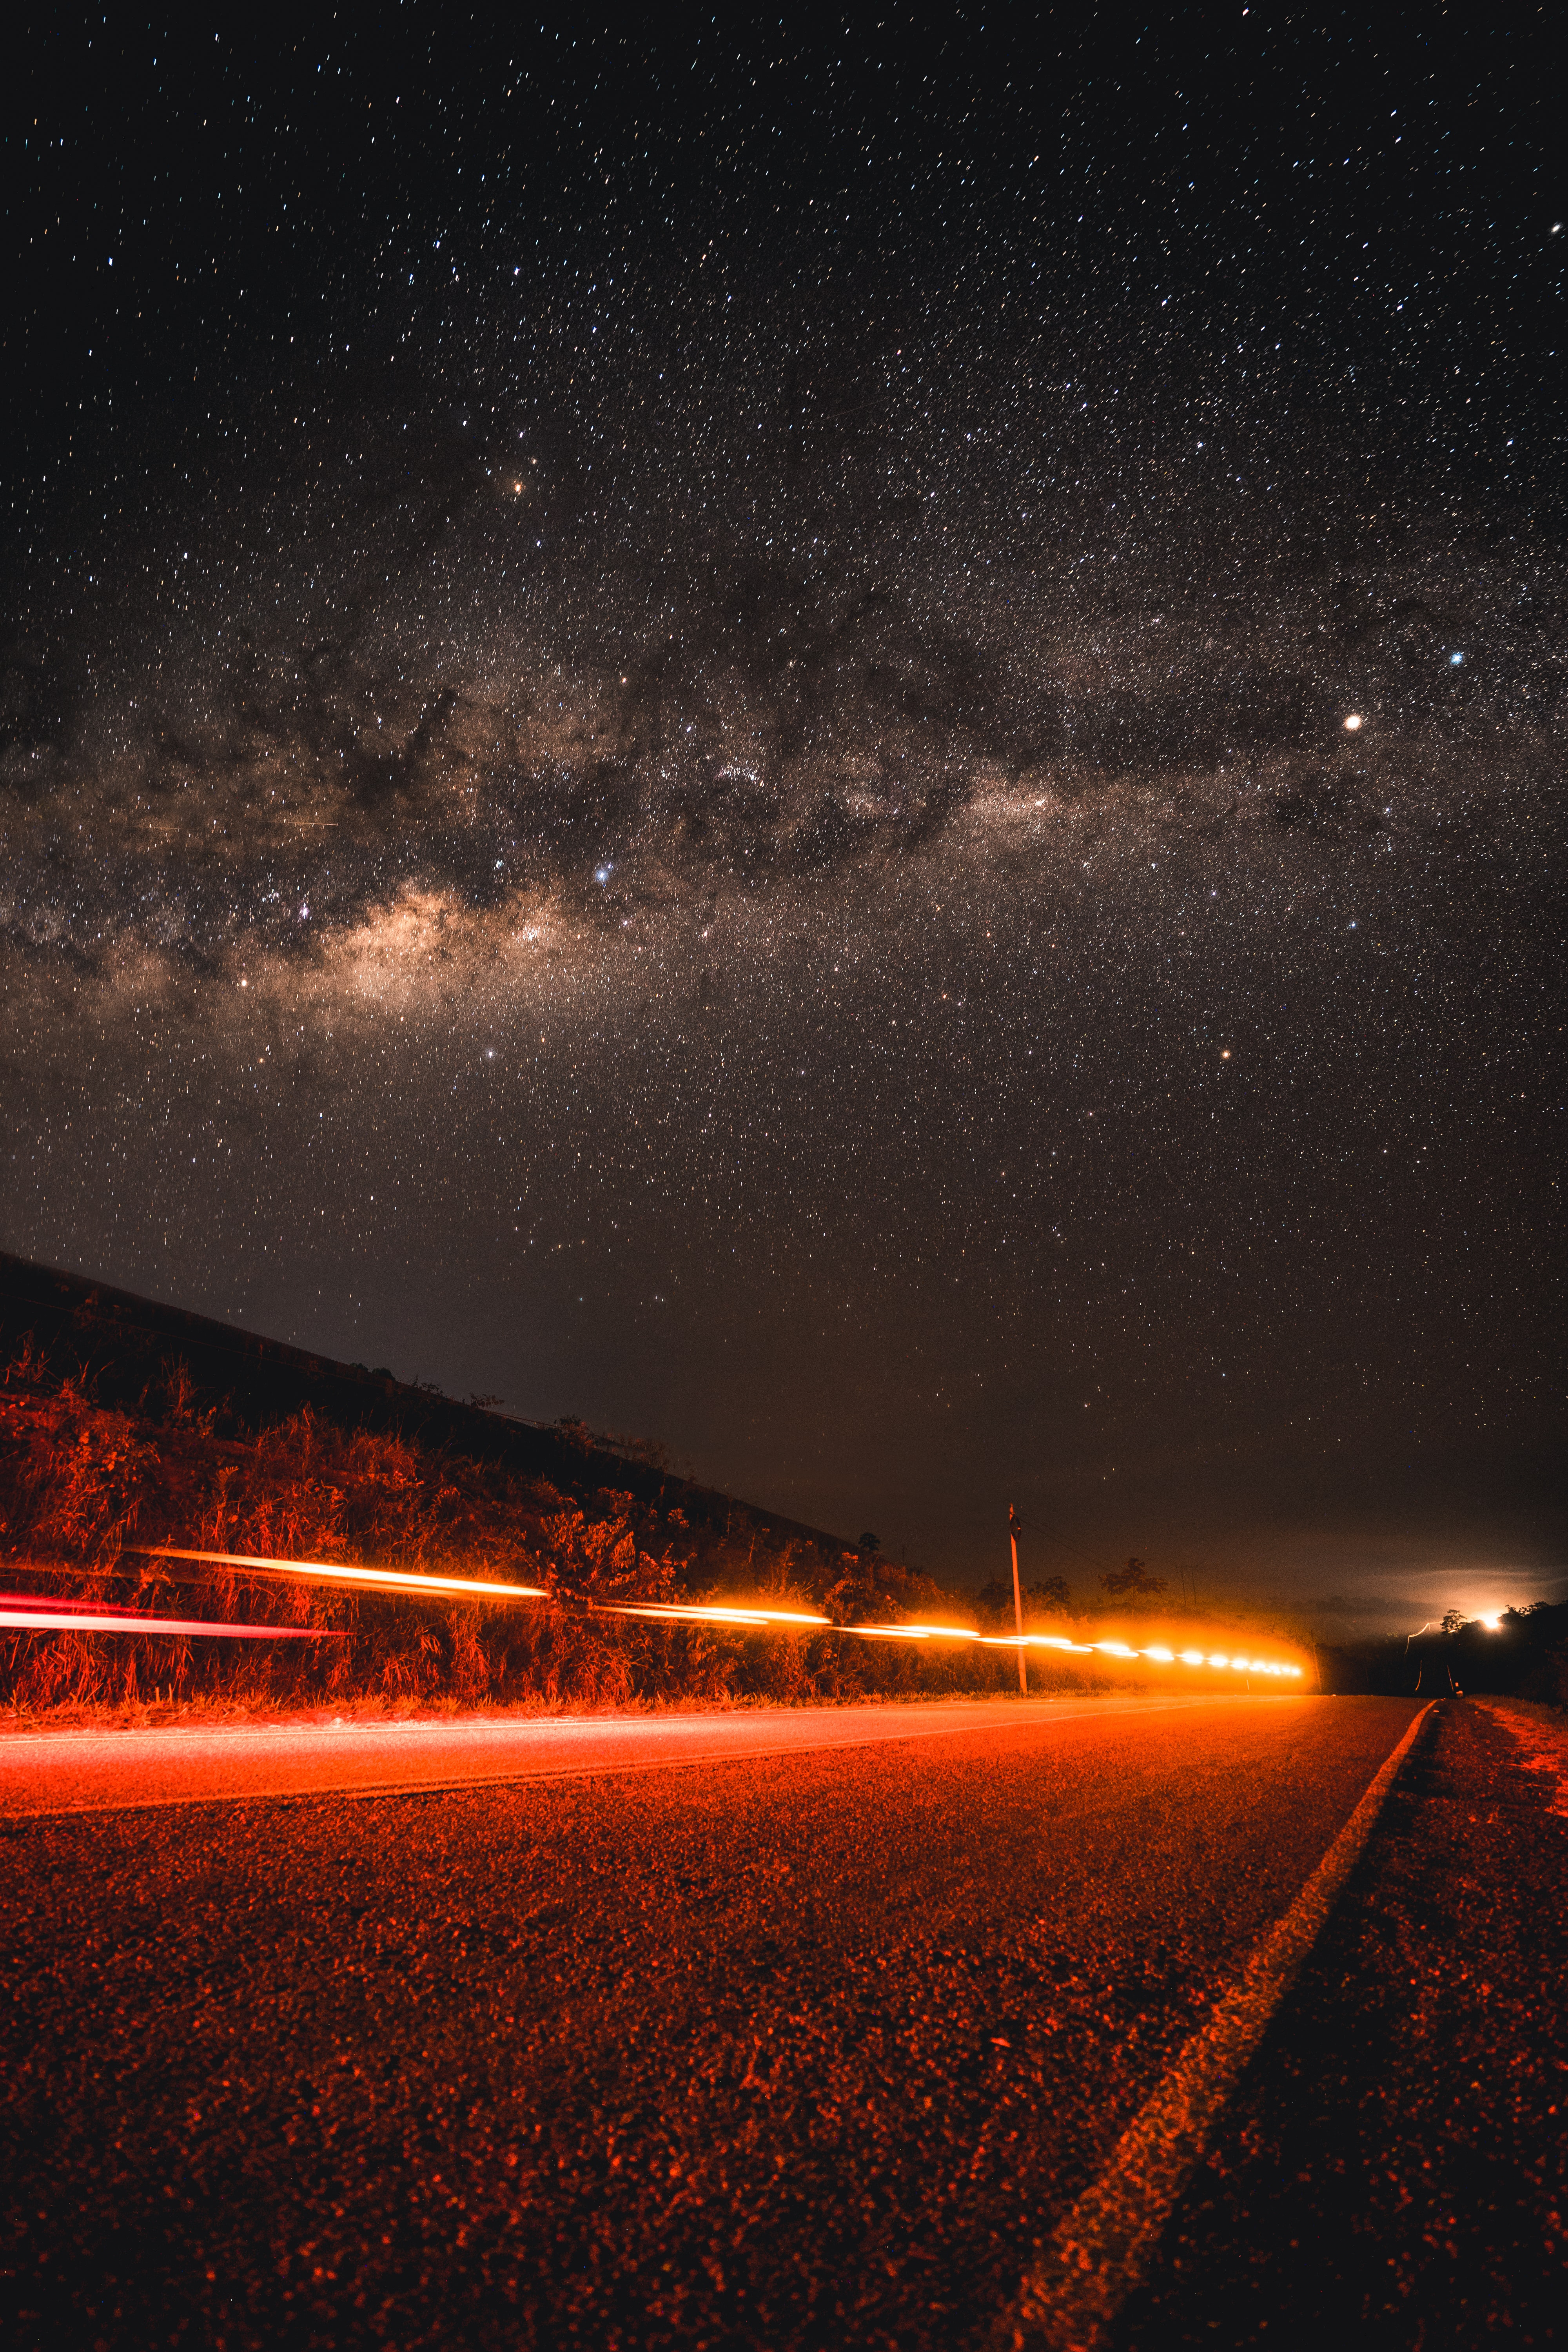 time lapse photography of stars and asphalt road